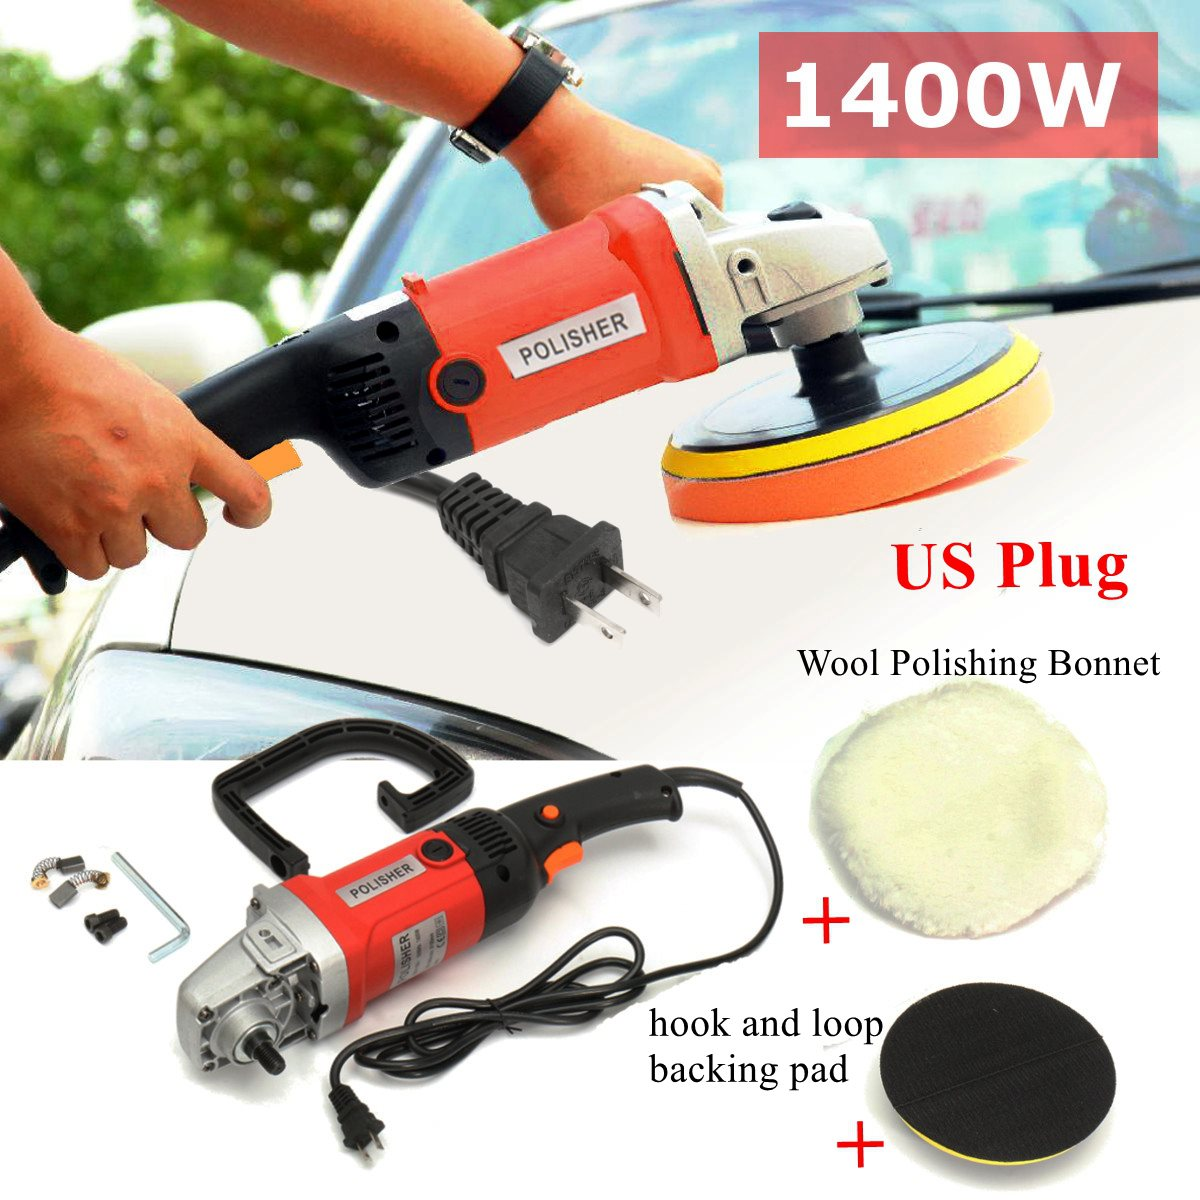 Heavy Duty 110V 1400W Polishing Waxing Machine Electric Polisher Power Sander Kit 180mm Hook Waxer for Car Boat ...